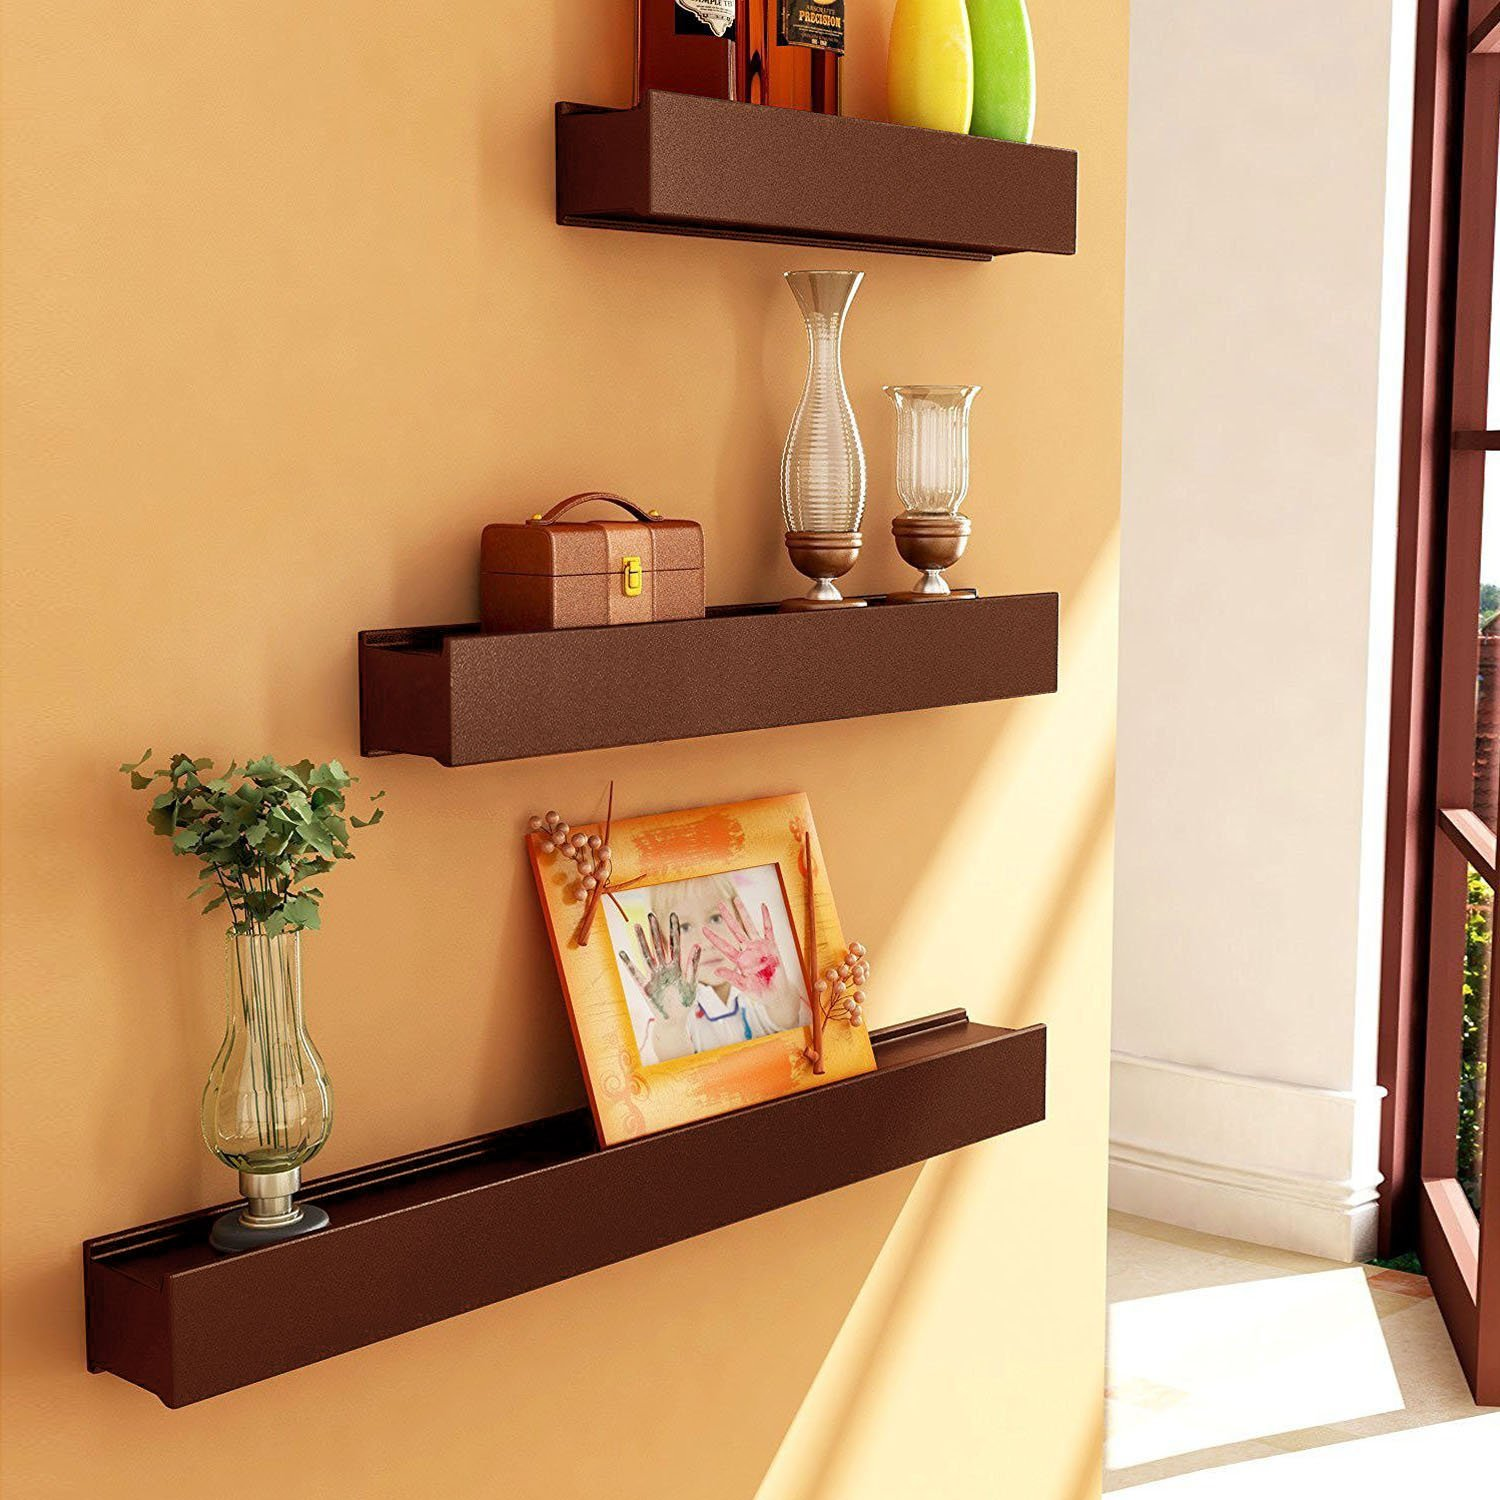 Artesia brown wooden wall shelf display rack shelf set of three artesia brown wooden wall shelf display rack shelf set of three amazon electronics amipublicfo Choice Image